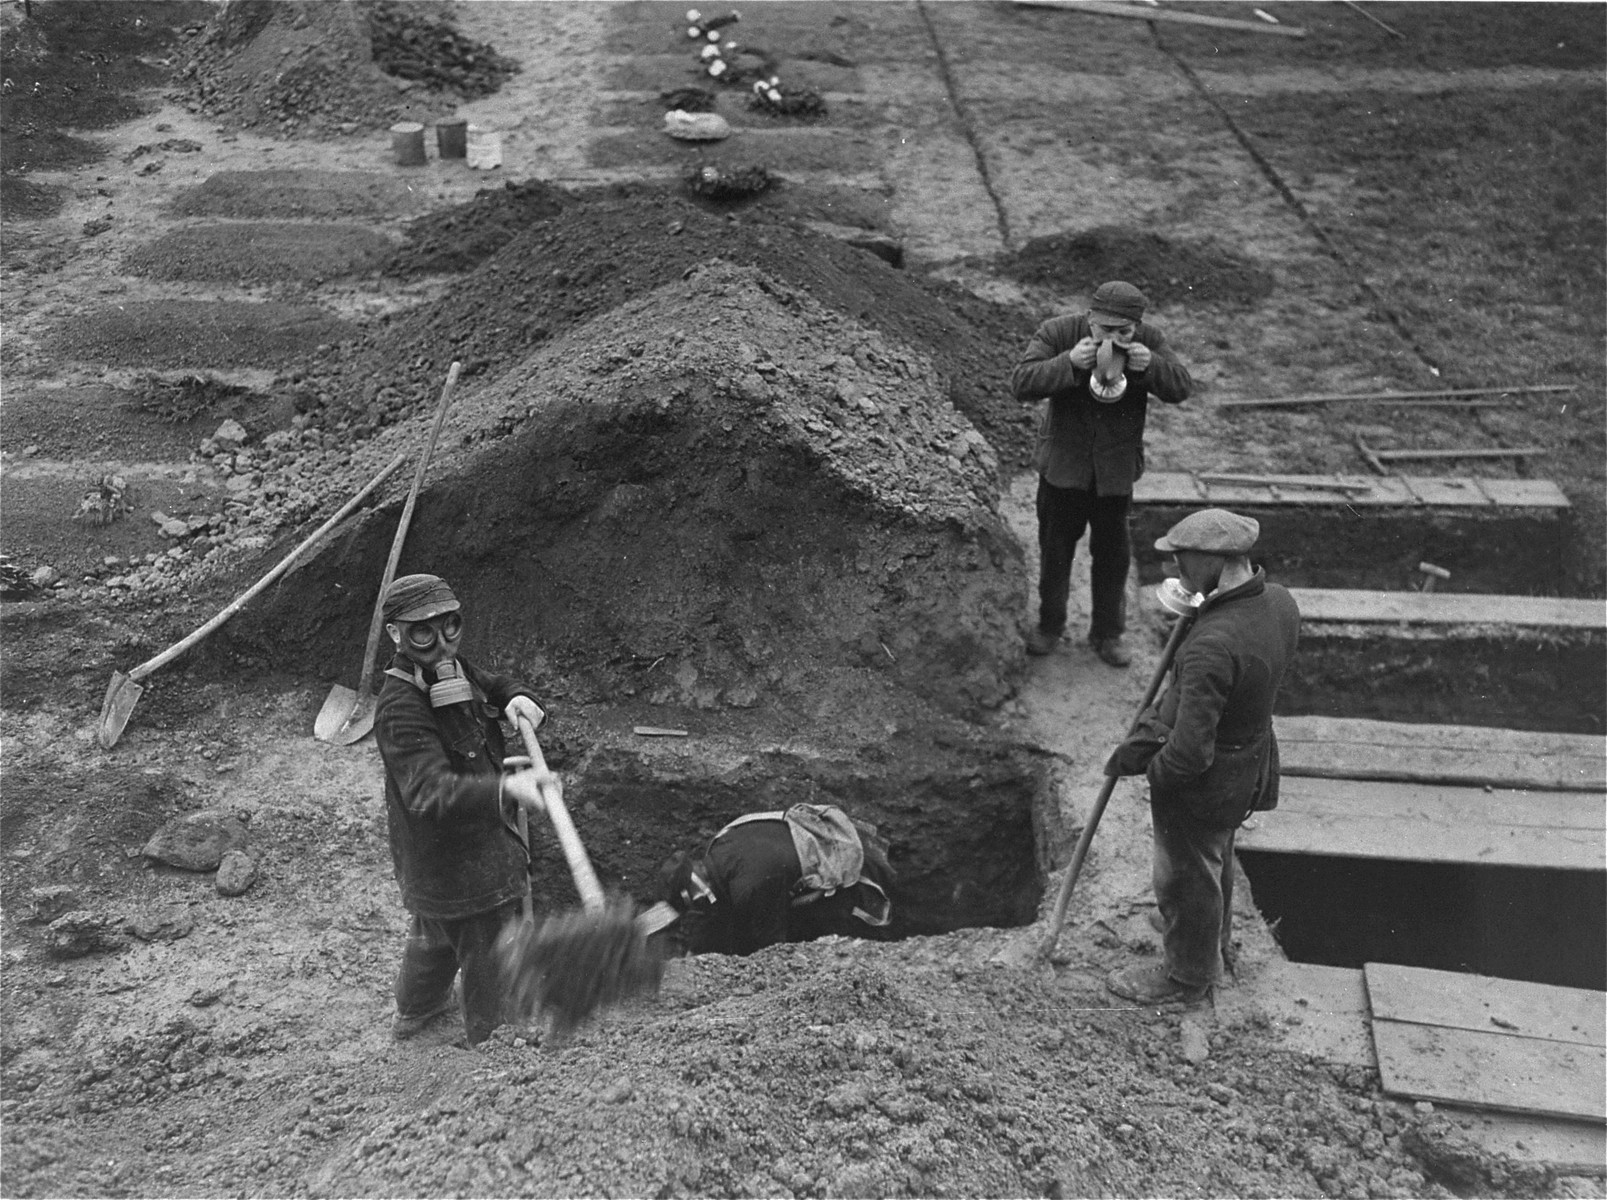 German civilians exhume the bodies of 44 Polish and Russian forced laborers who were put to death at the Hadamar Institute and buried in a mass grave behind the euthanasia facility.    The grave was opened at the direction of American war crimes investigators.  The photograph was taken by an American military photographer soon after the liberation.